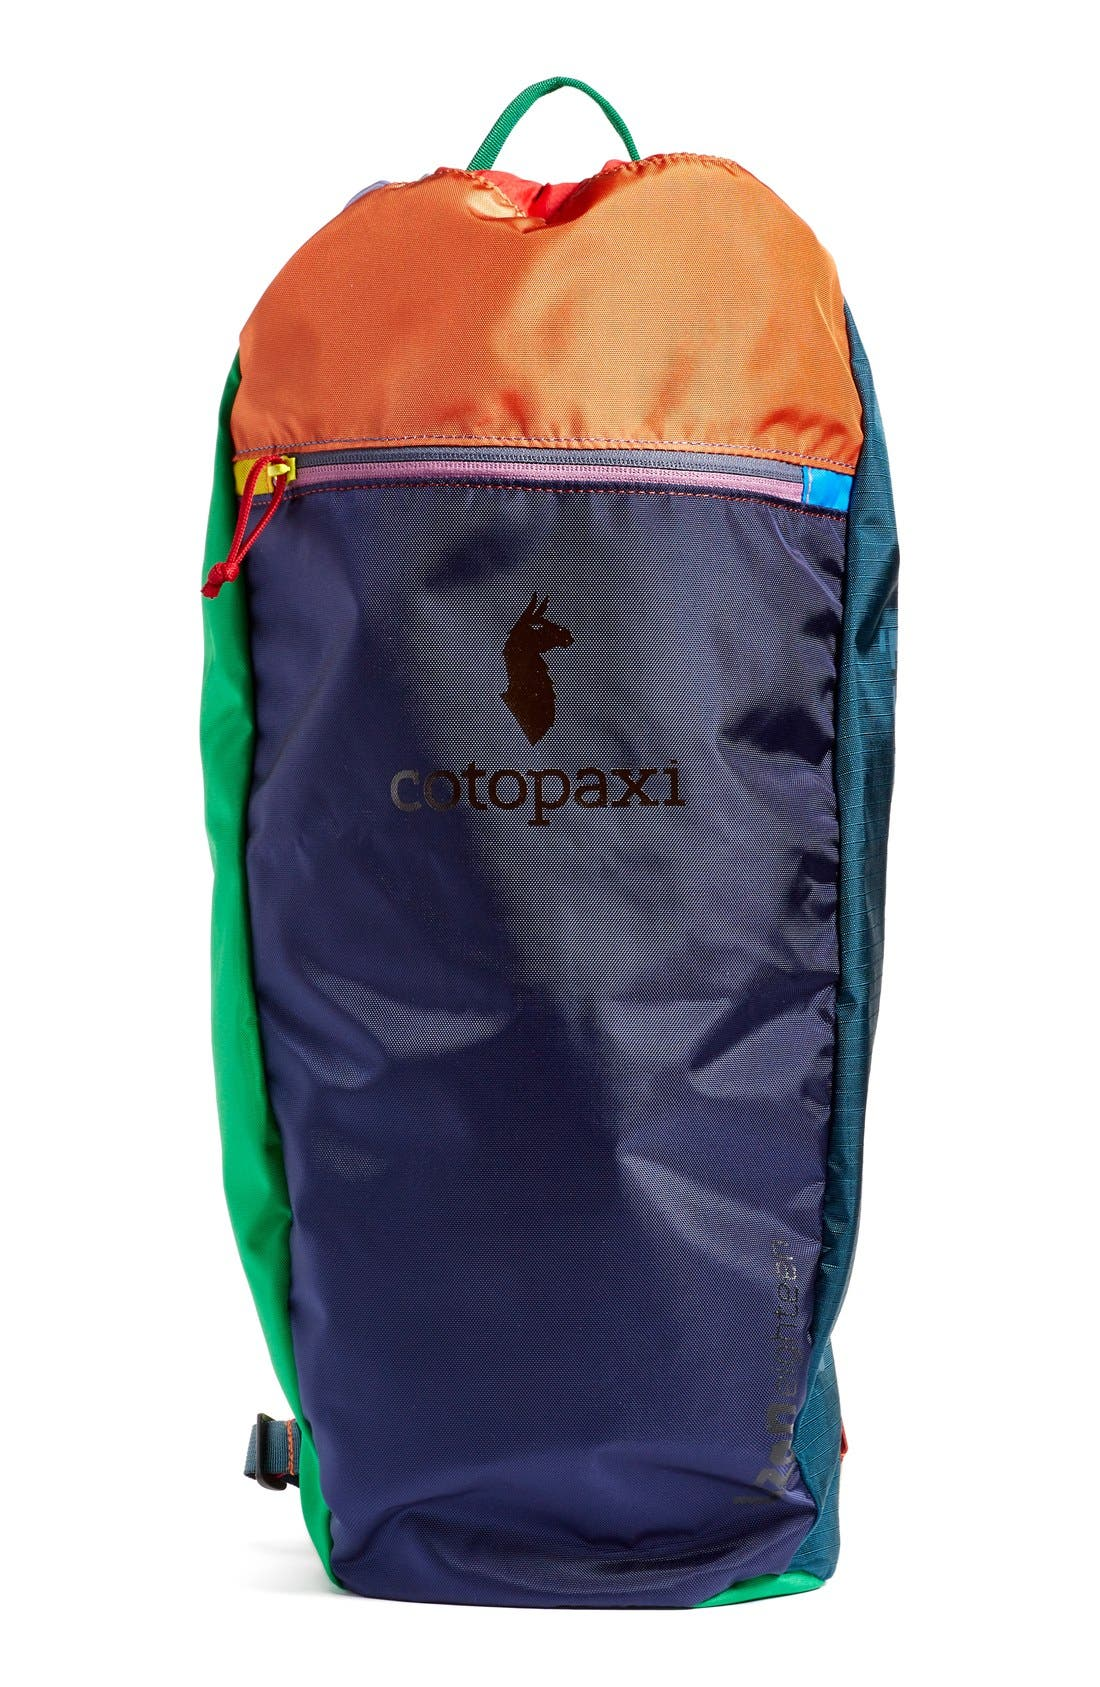 Luzon Del Dia One of a Kind Ripstop Nylon Daypack,                             Alternate thumbnail 4, color,                             960